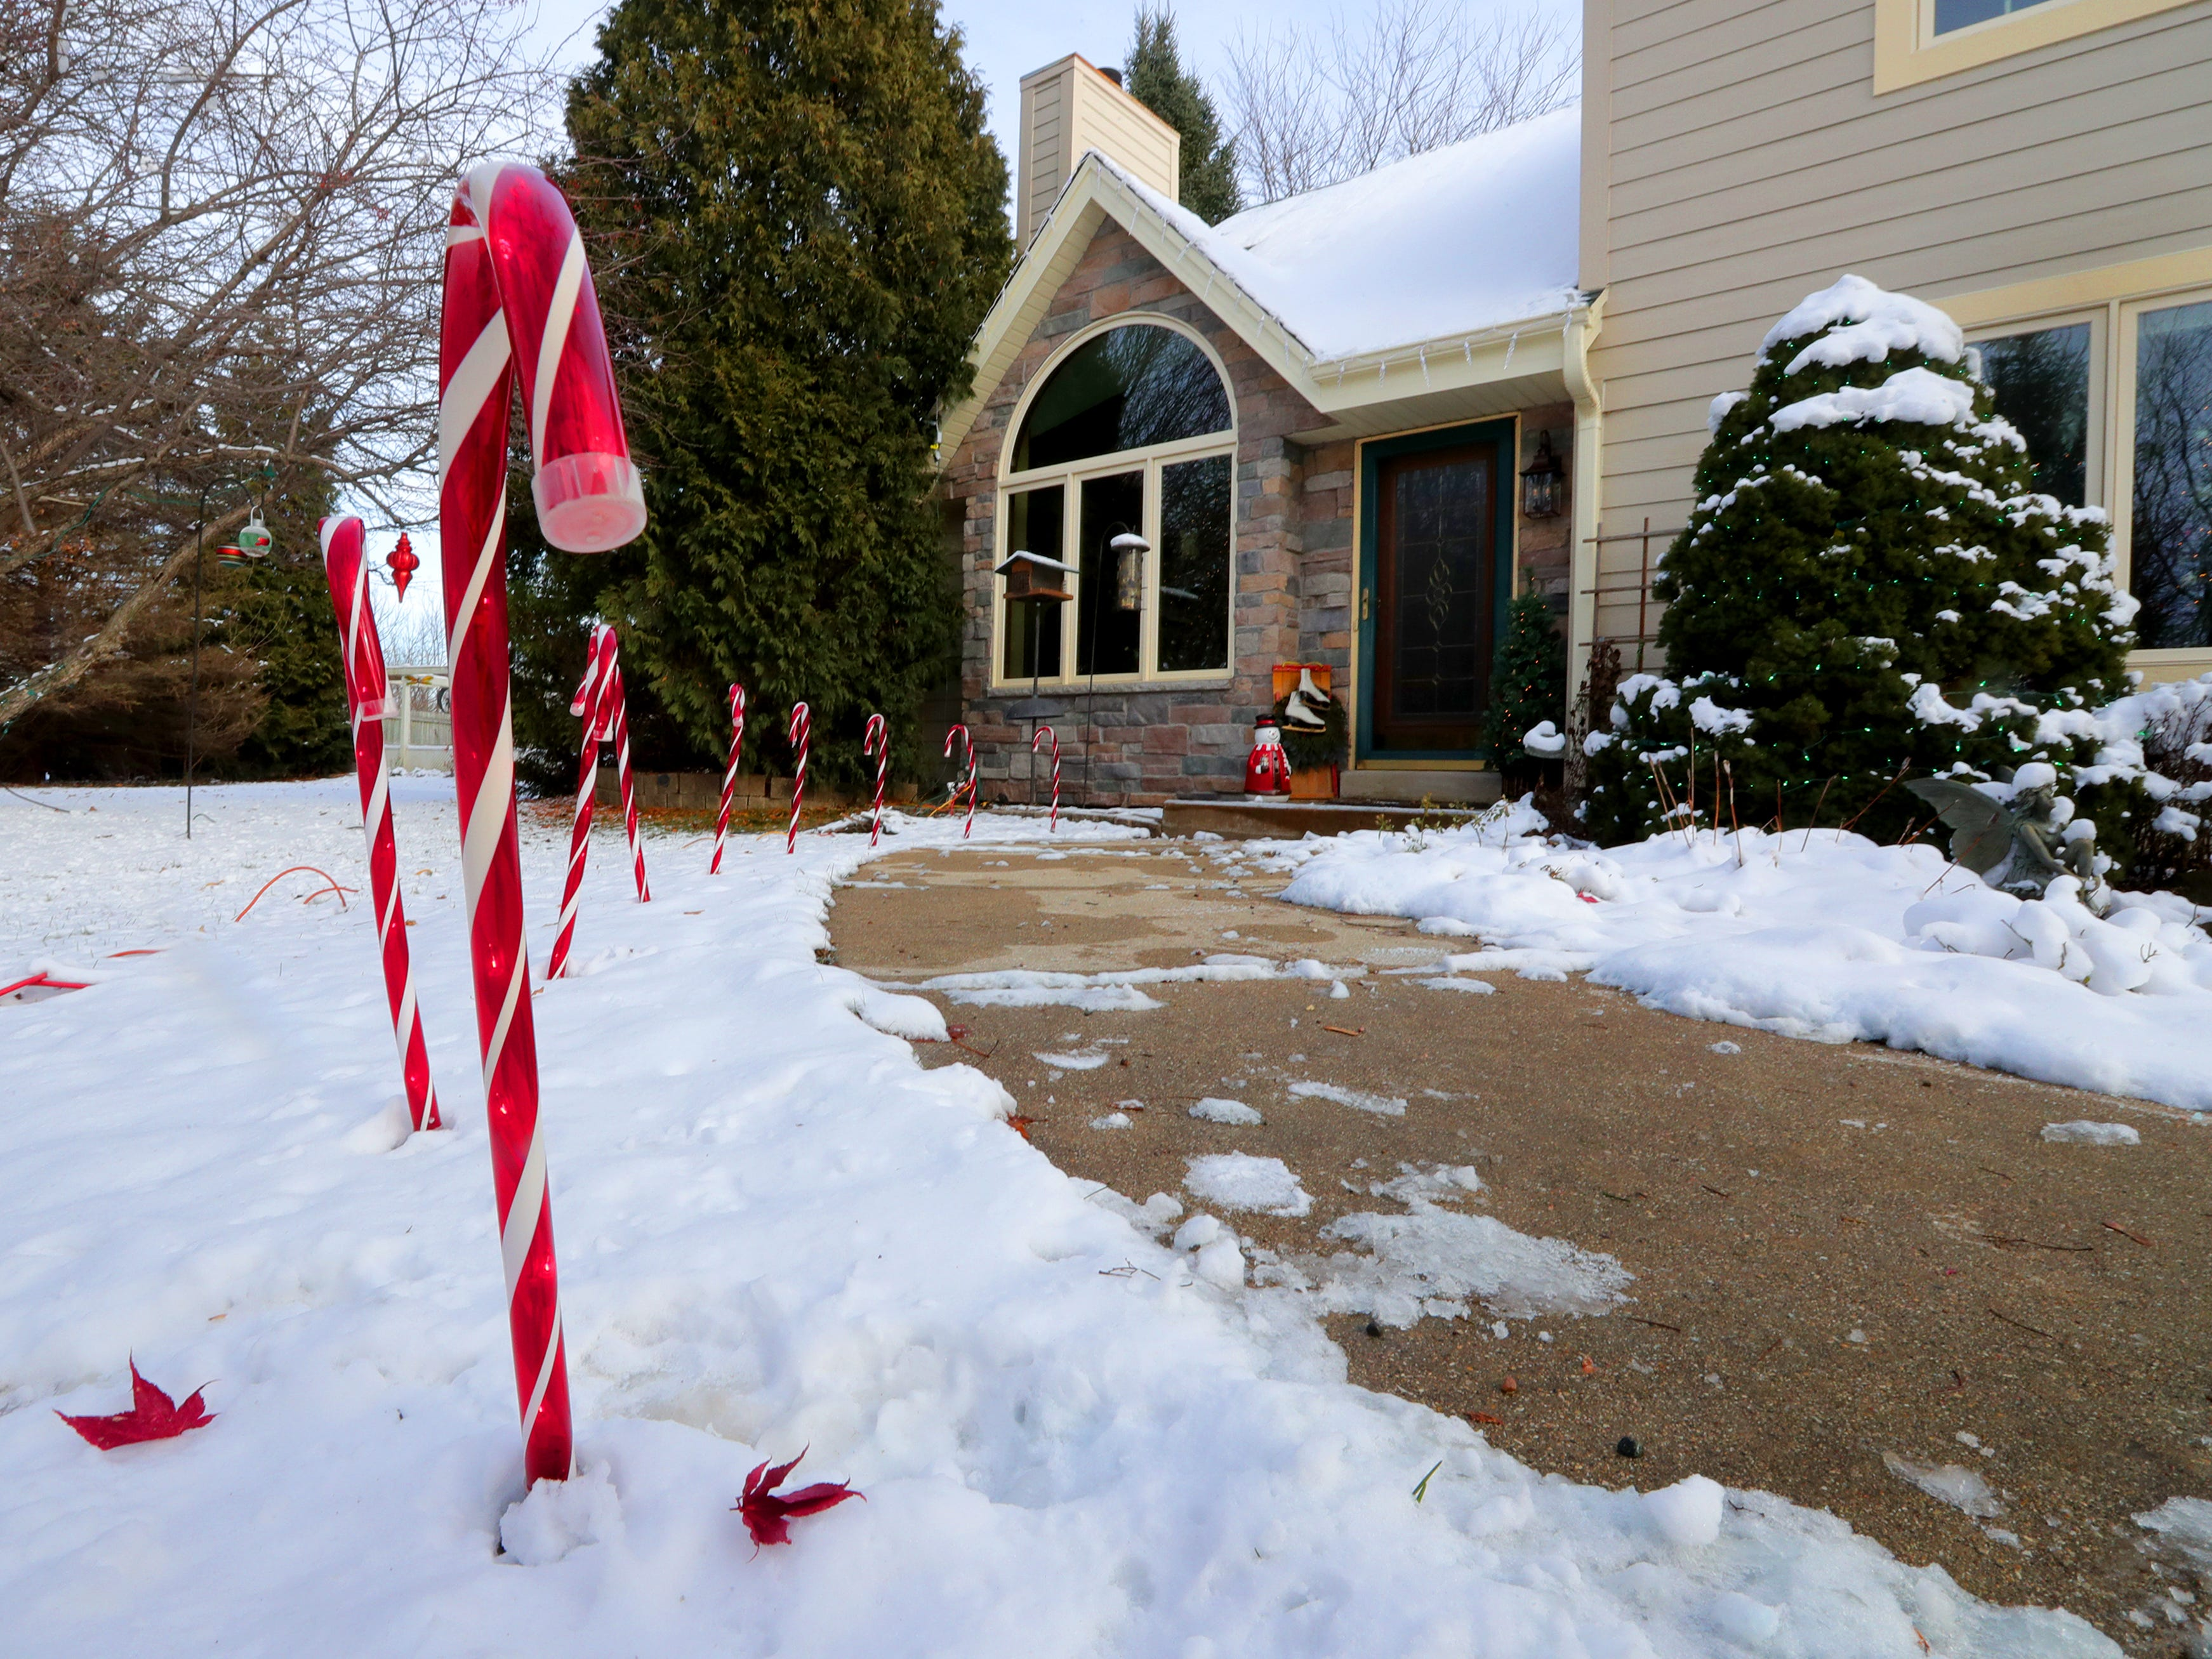 While Renee Sirny takes care of the decorations indoors, her husband, Lee, is in charge of the outdoor decorations, including these candy cane lights.